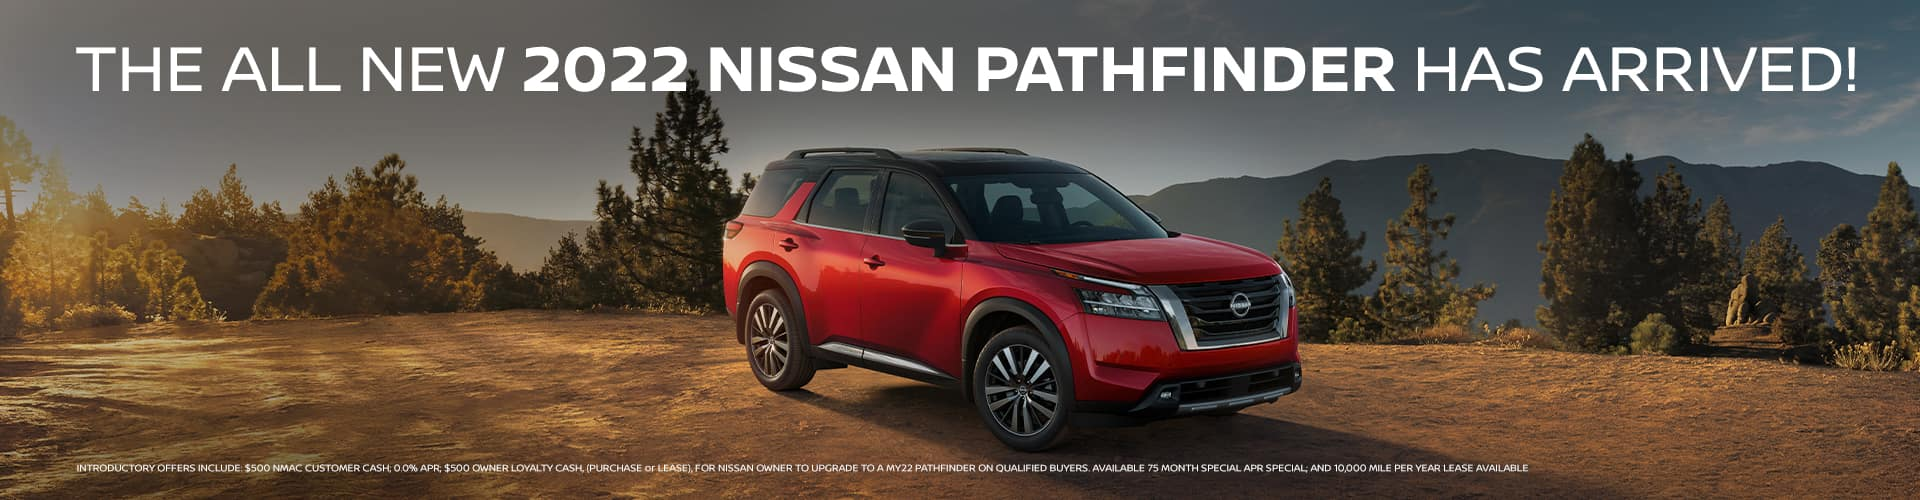 THE ALL NEW 2022 NISSAN PATHFINDER HAS ARRIVED!